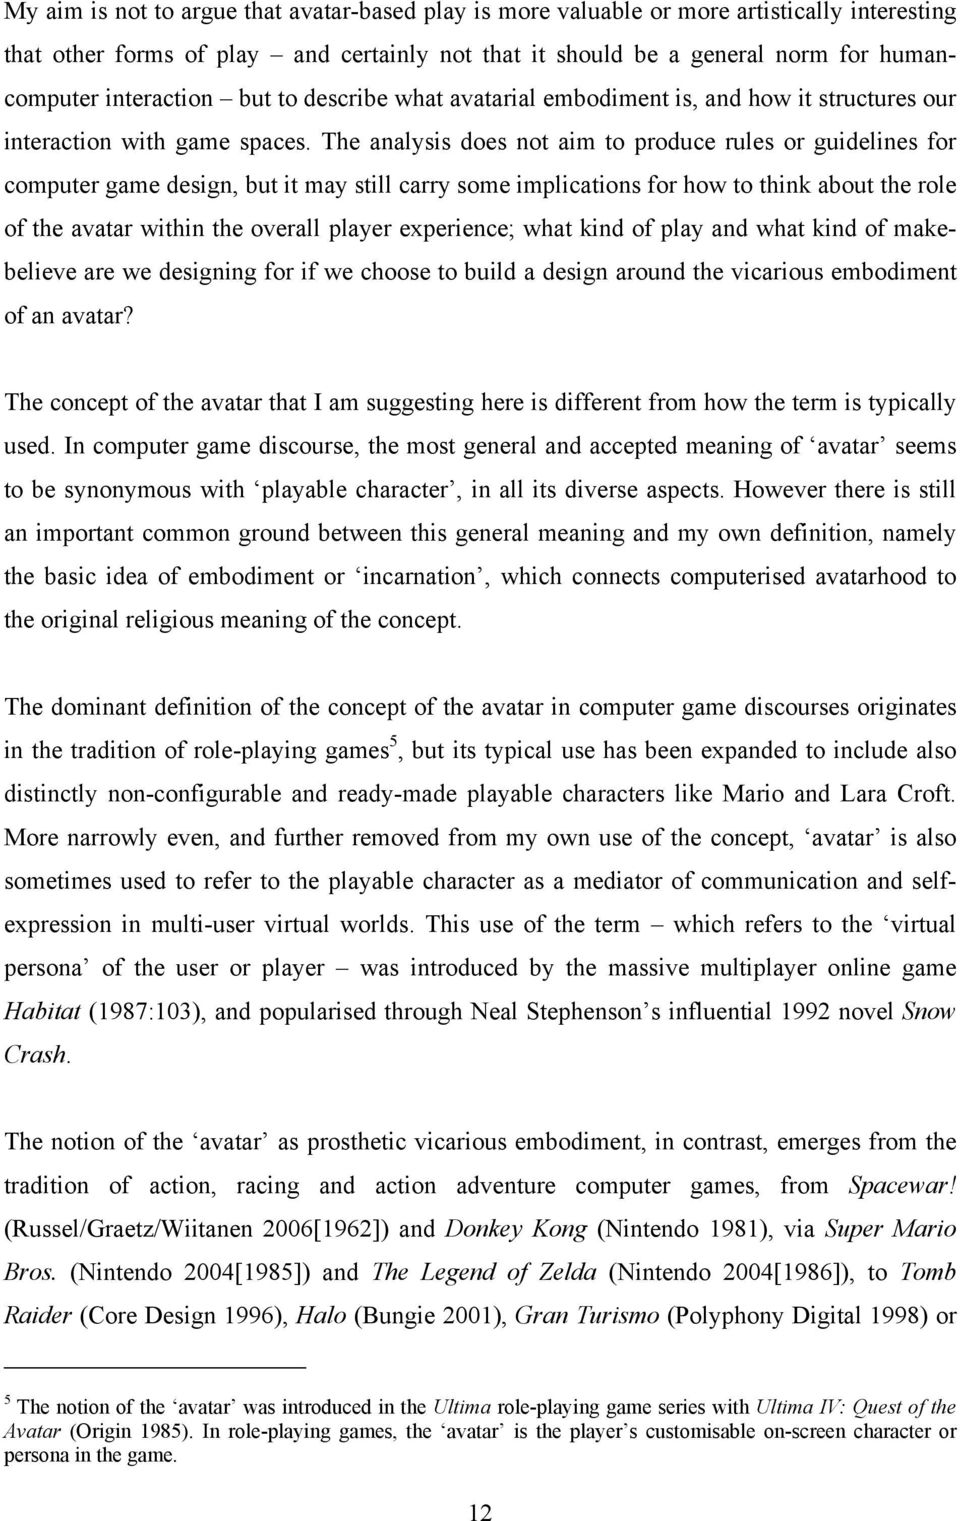 The analysis does not aim to produce rules or guidelines for computer game design, but it may still carry some implications for how to think about the role of the avatar within the overall player